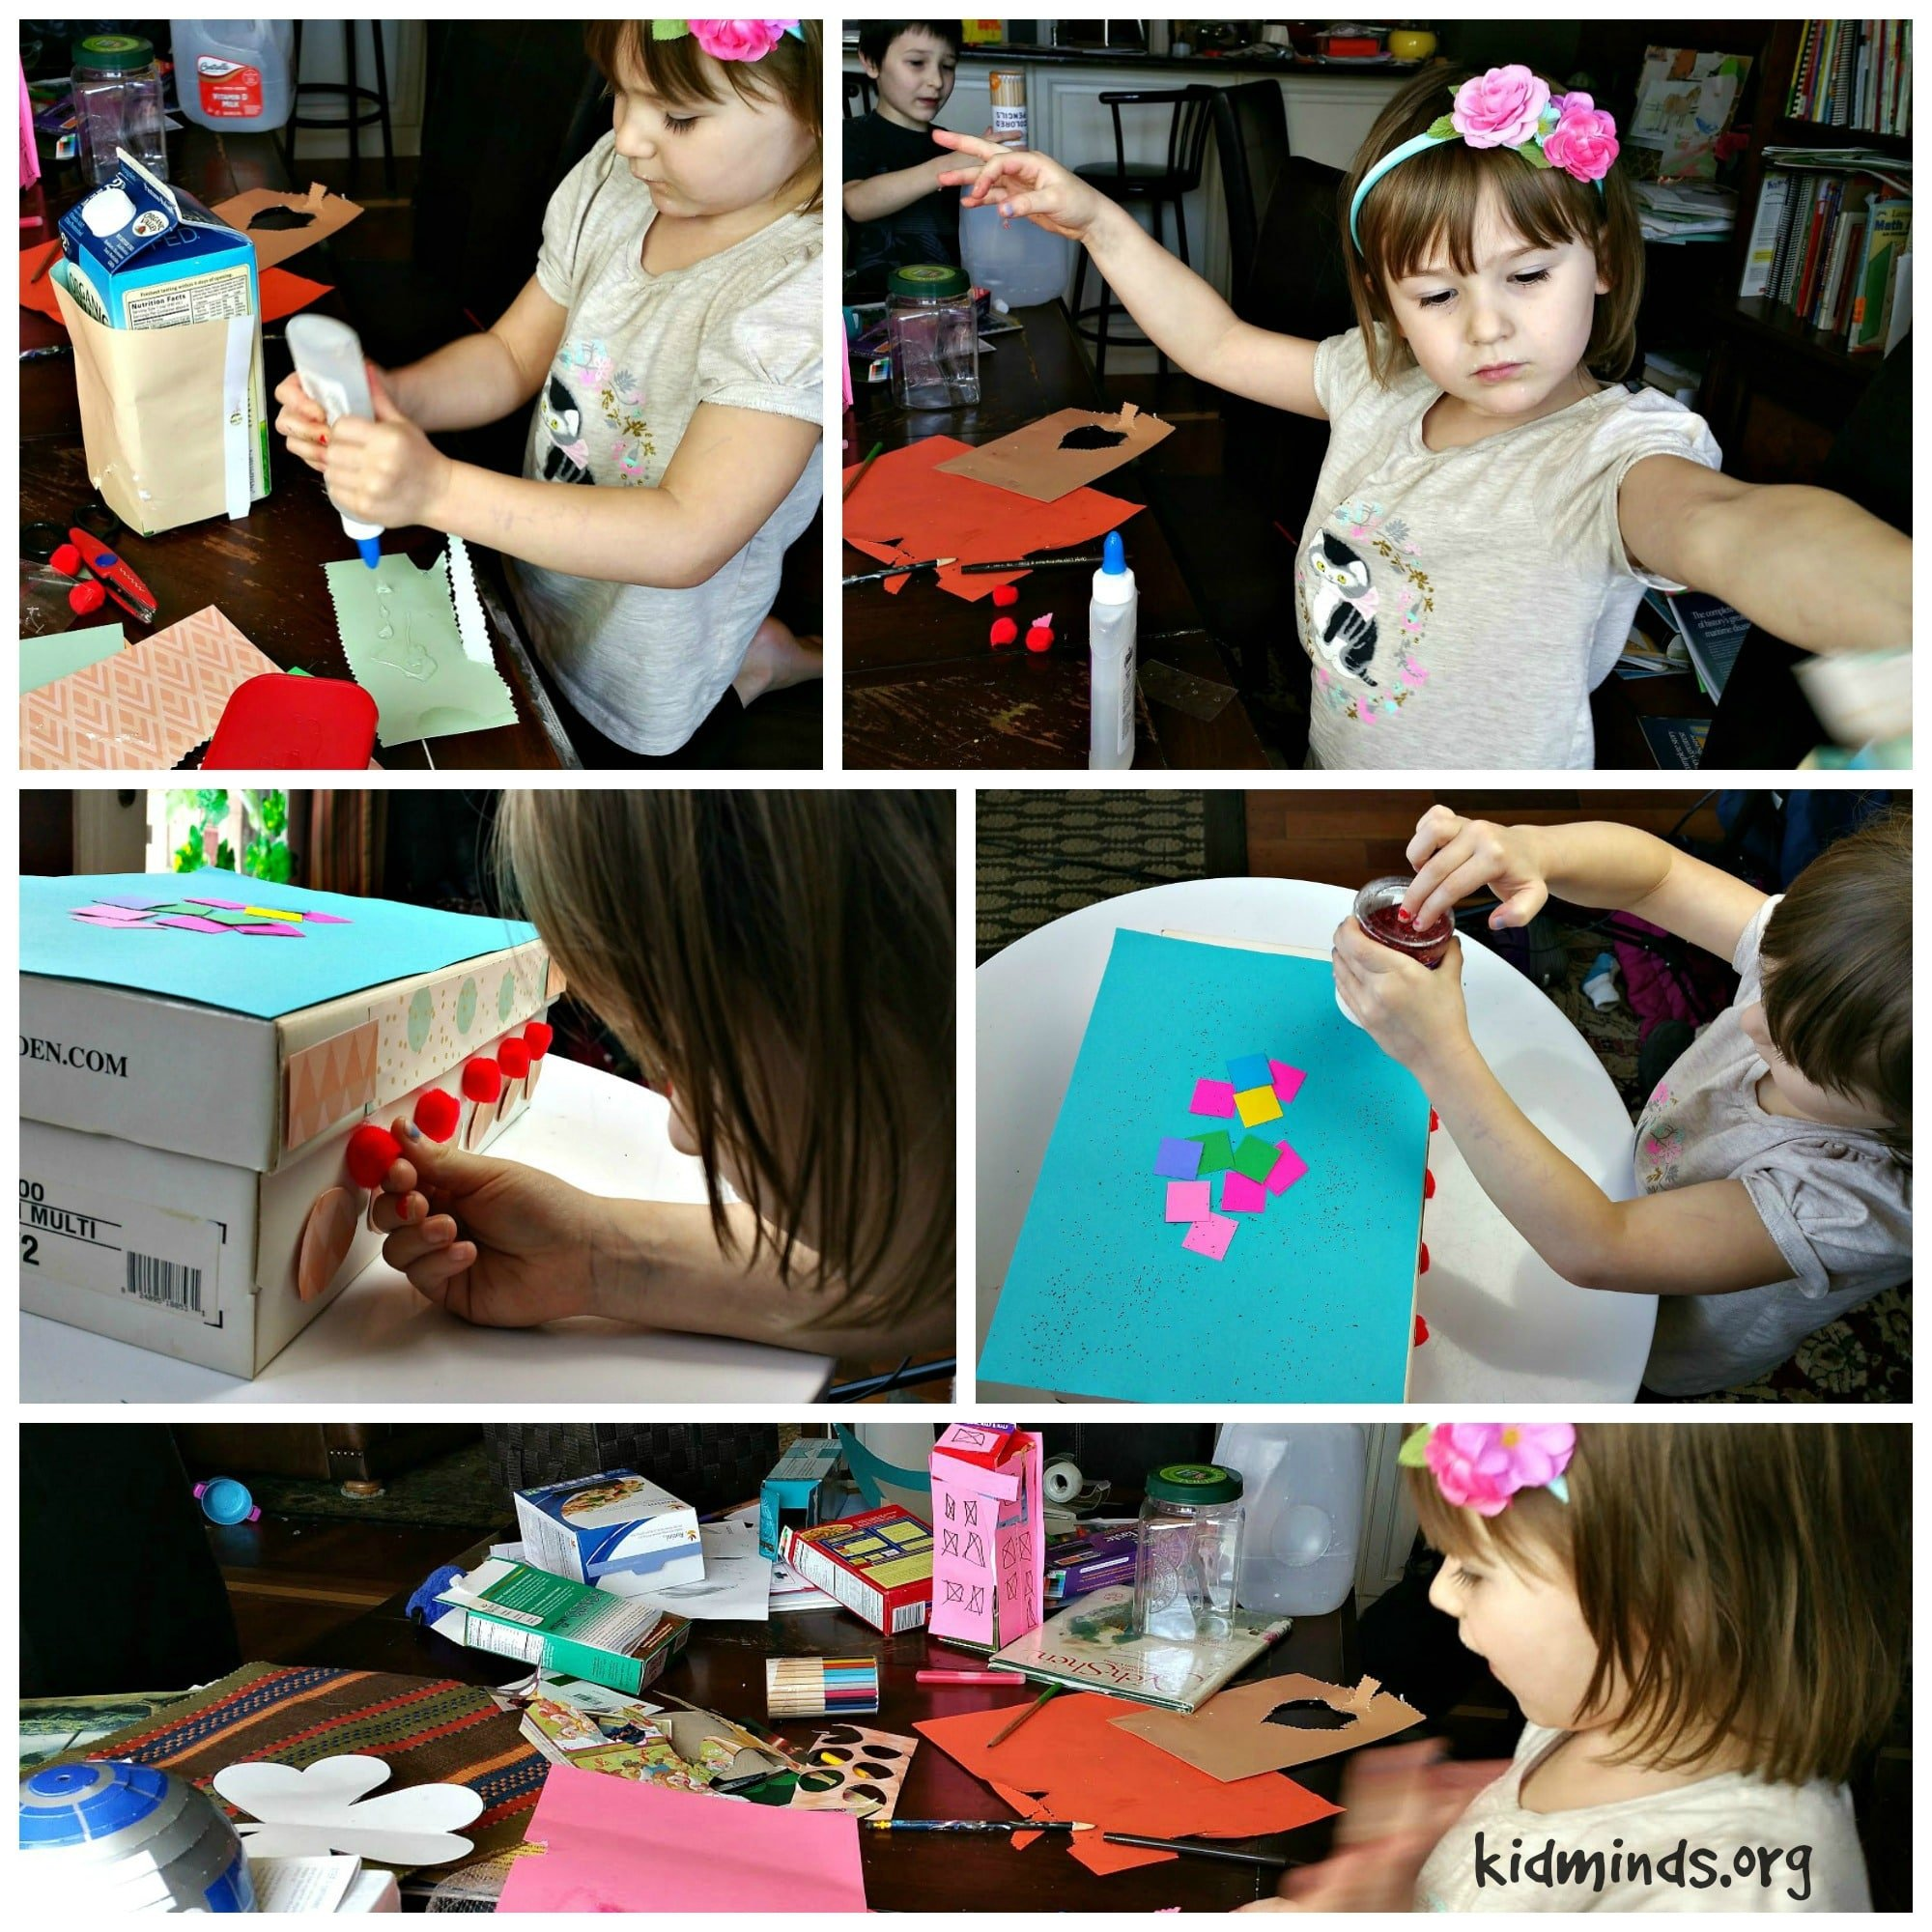 Turn shoe box into a treasure chest with a few supplies around the house.  Glue, glitter, construction paper and maybe some magazine clippings.... stir imagination and encourage creativity.